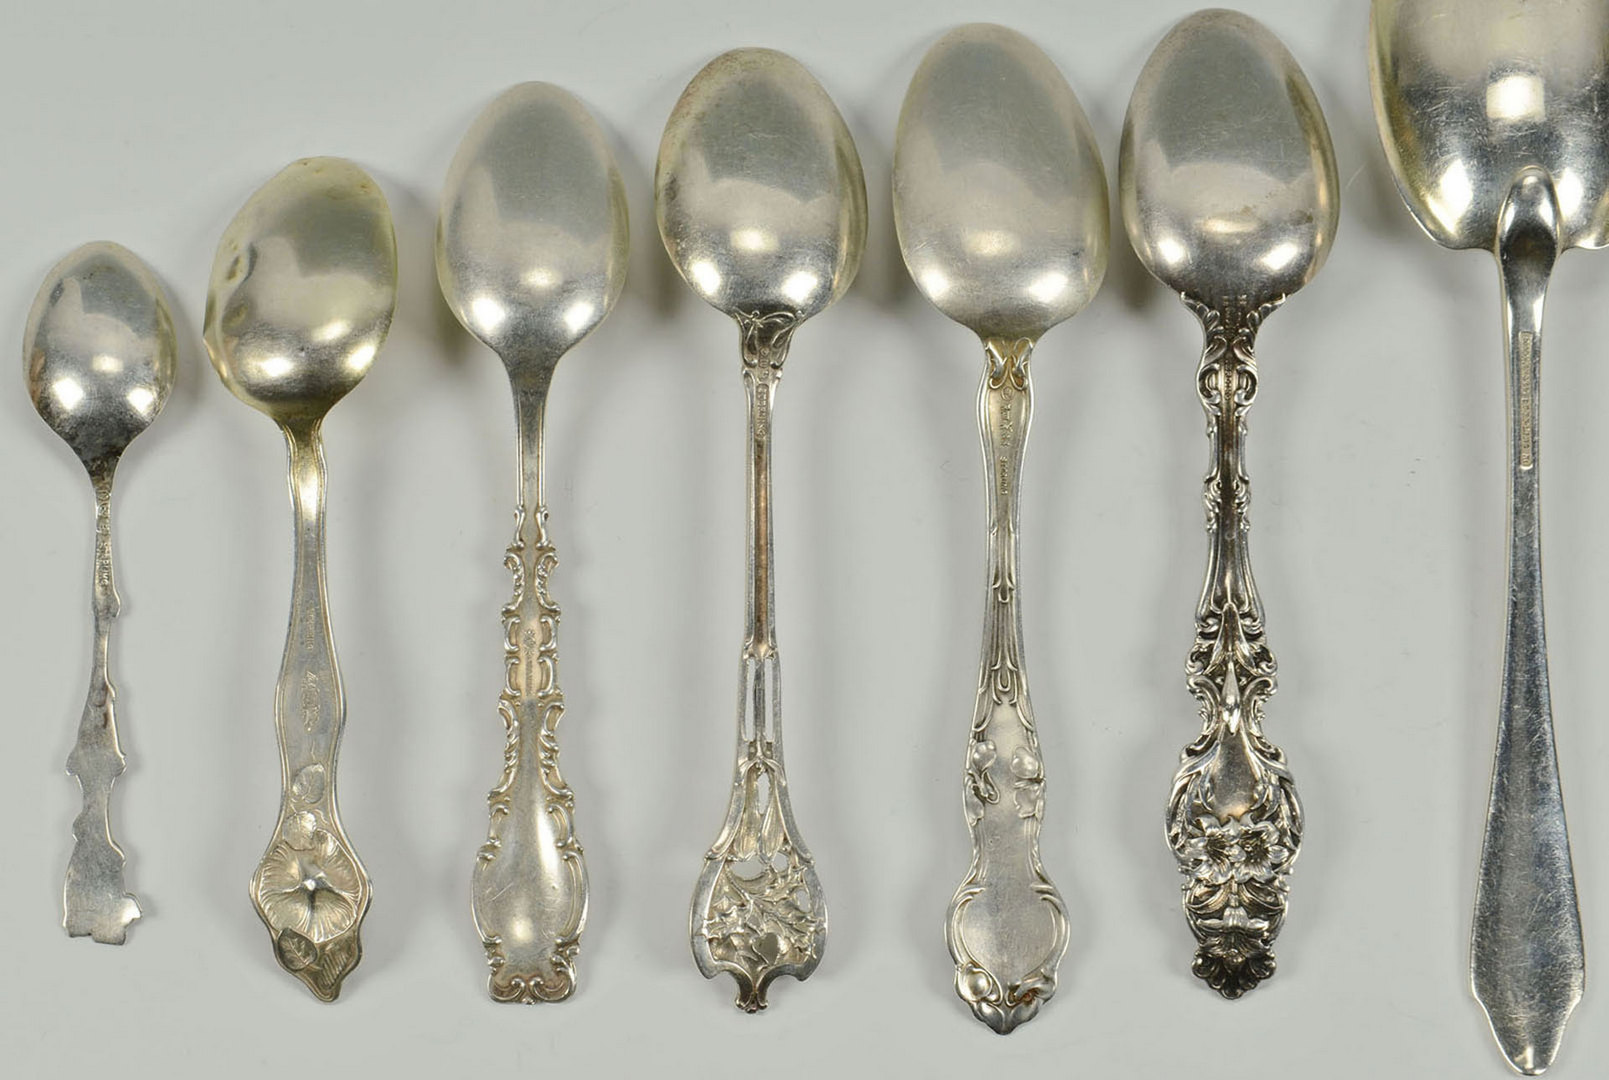 lot 592  13 sterling silver spoons incl tiffany serving spo